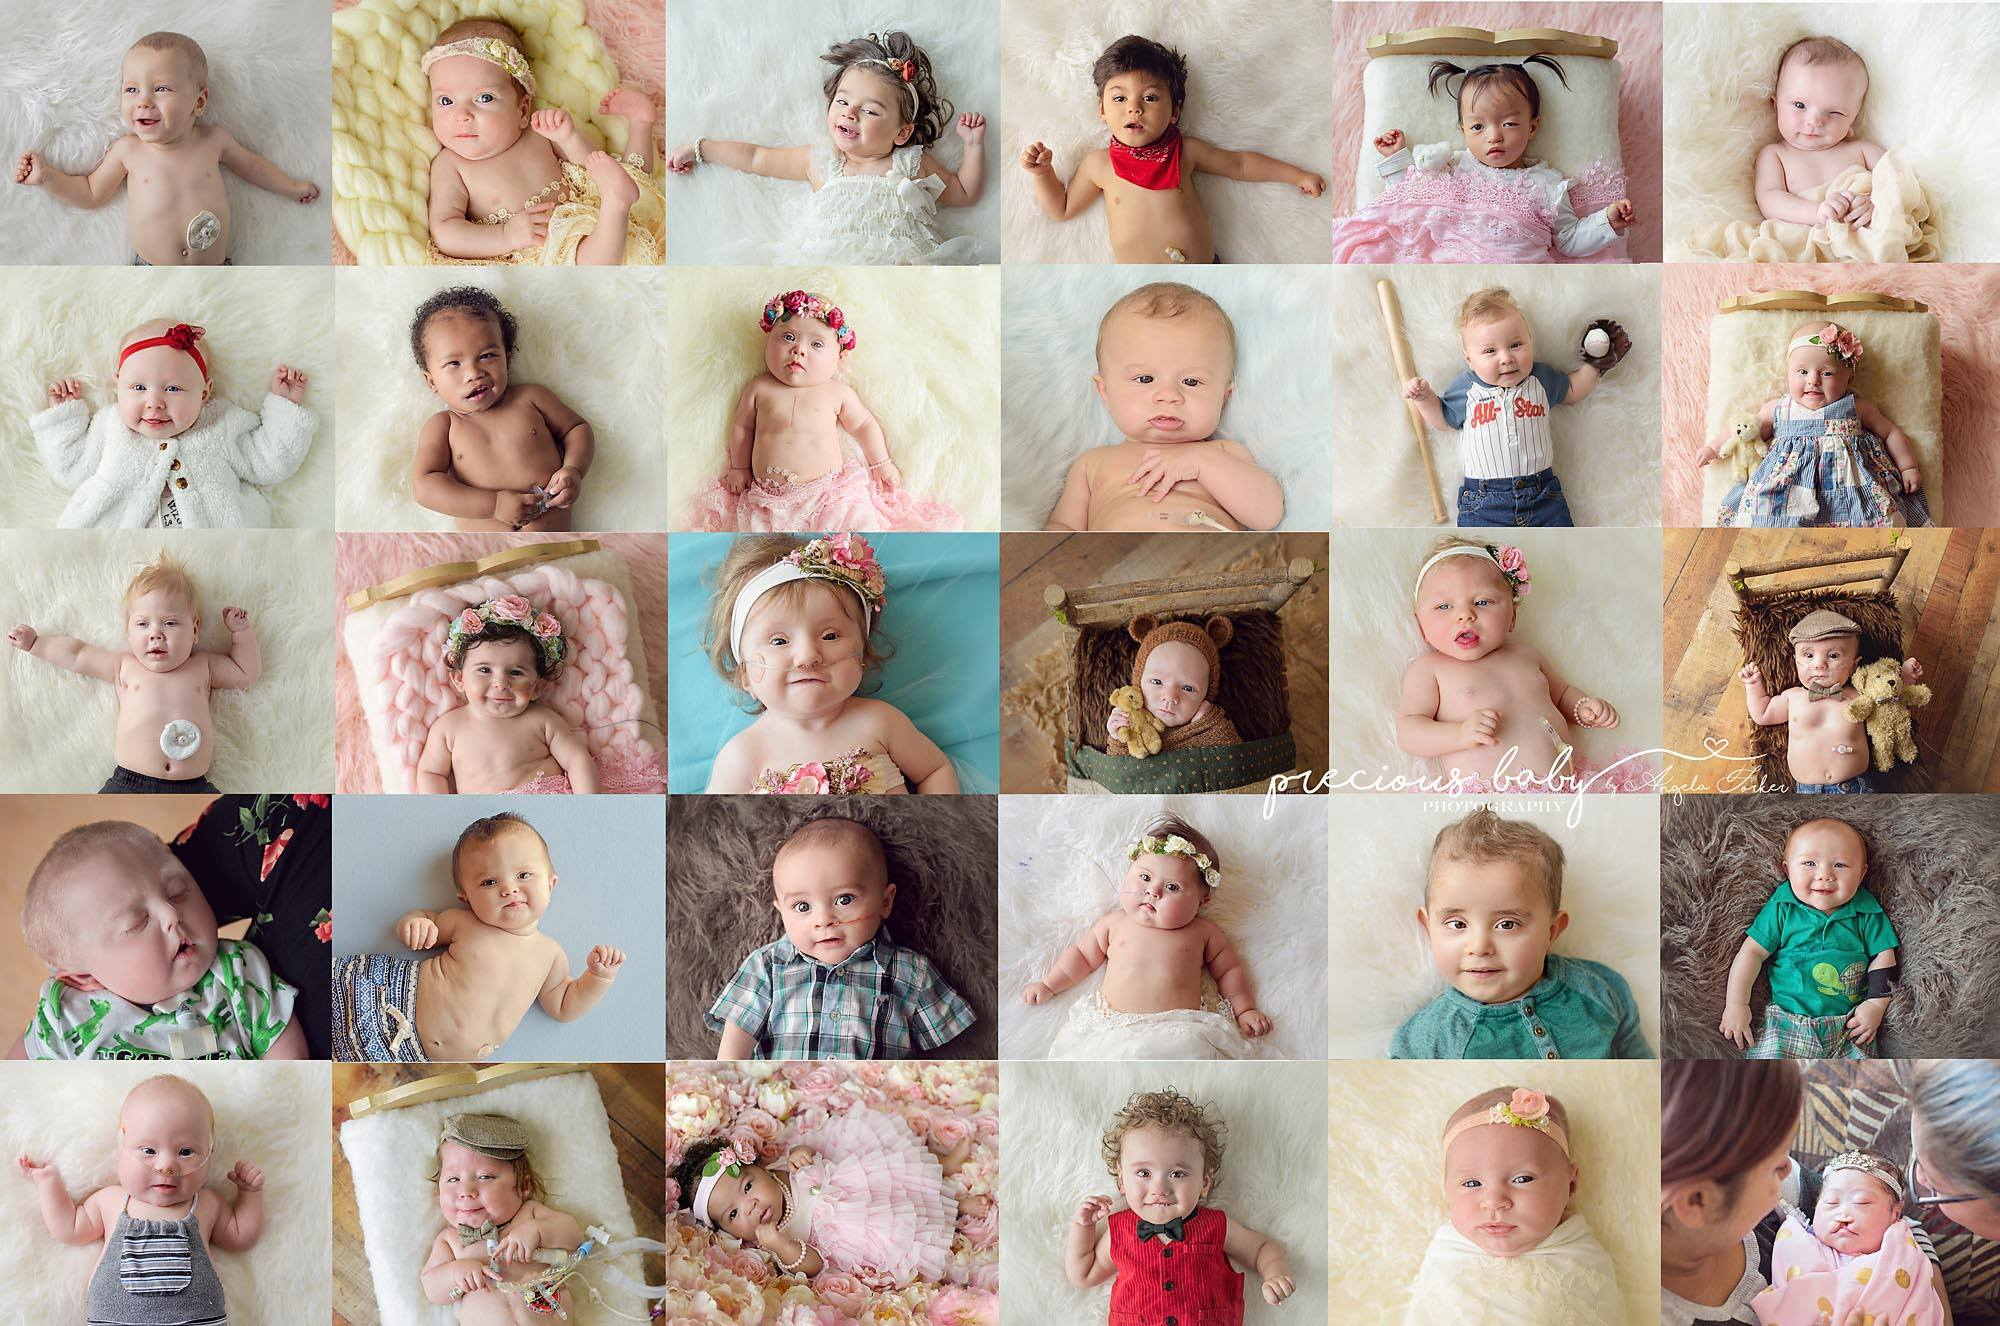 precious babies - Angela Forker Takes Breathtaking Portraits Of Babies With Special Needs